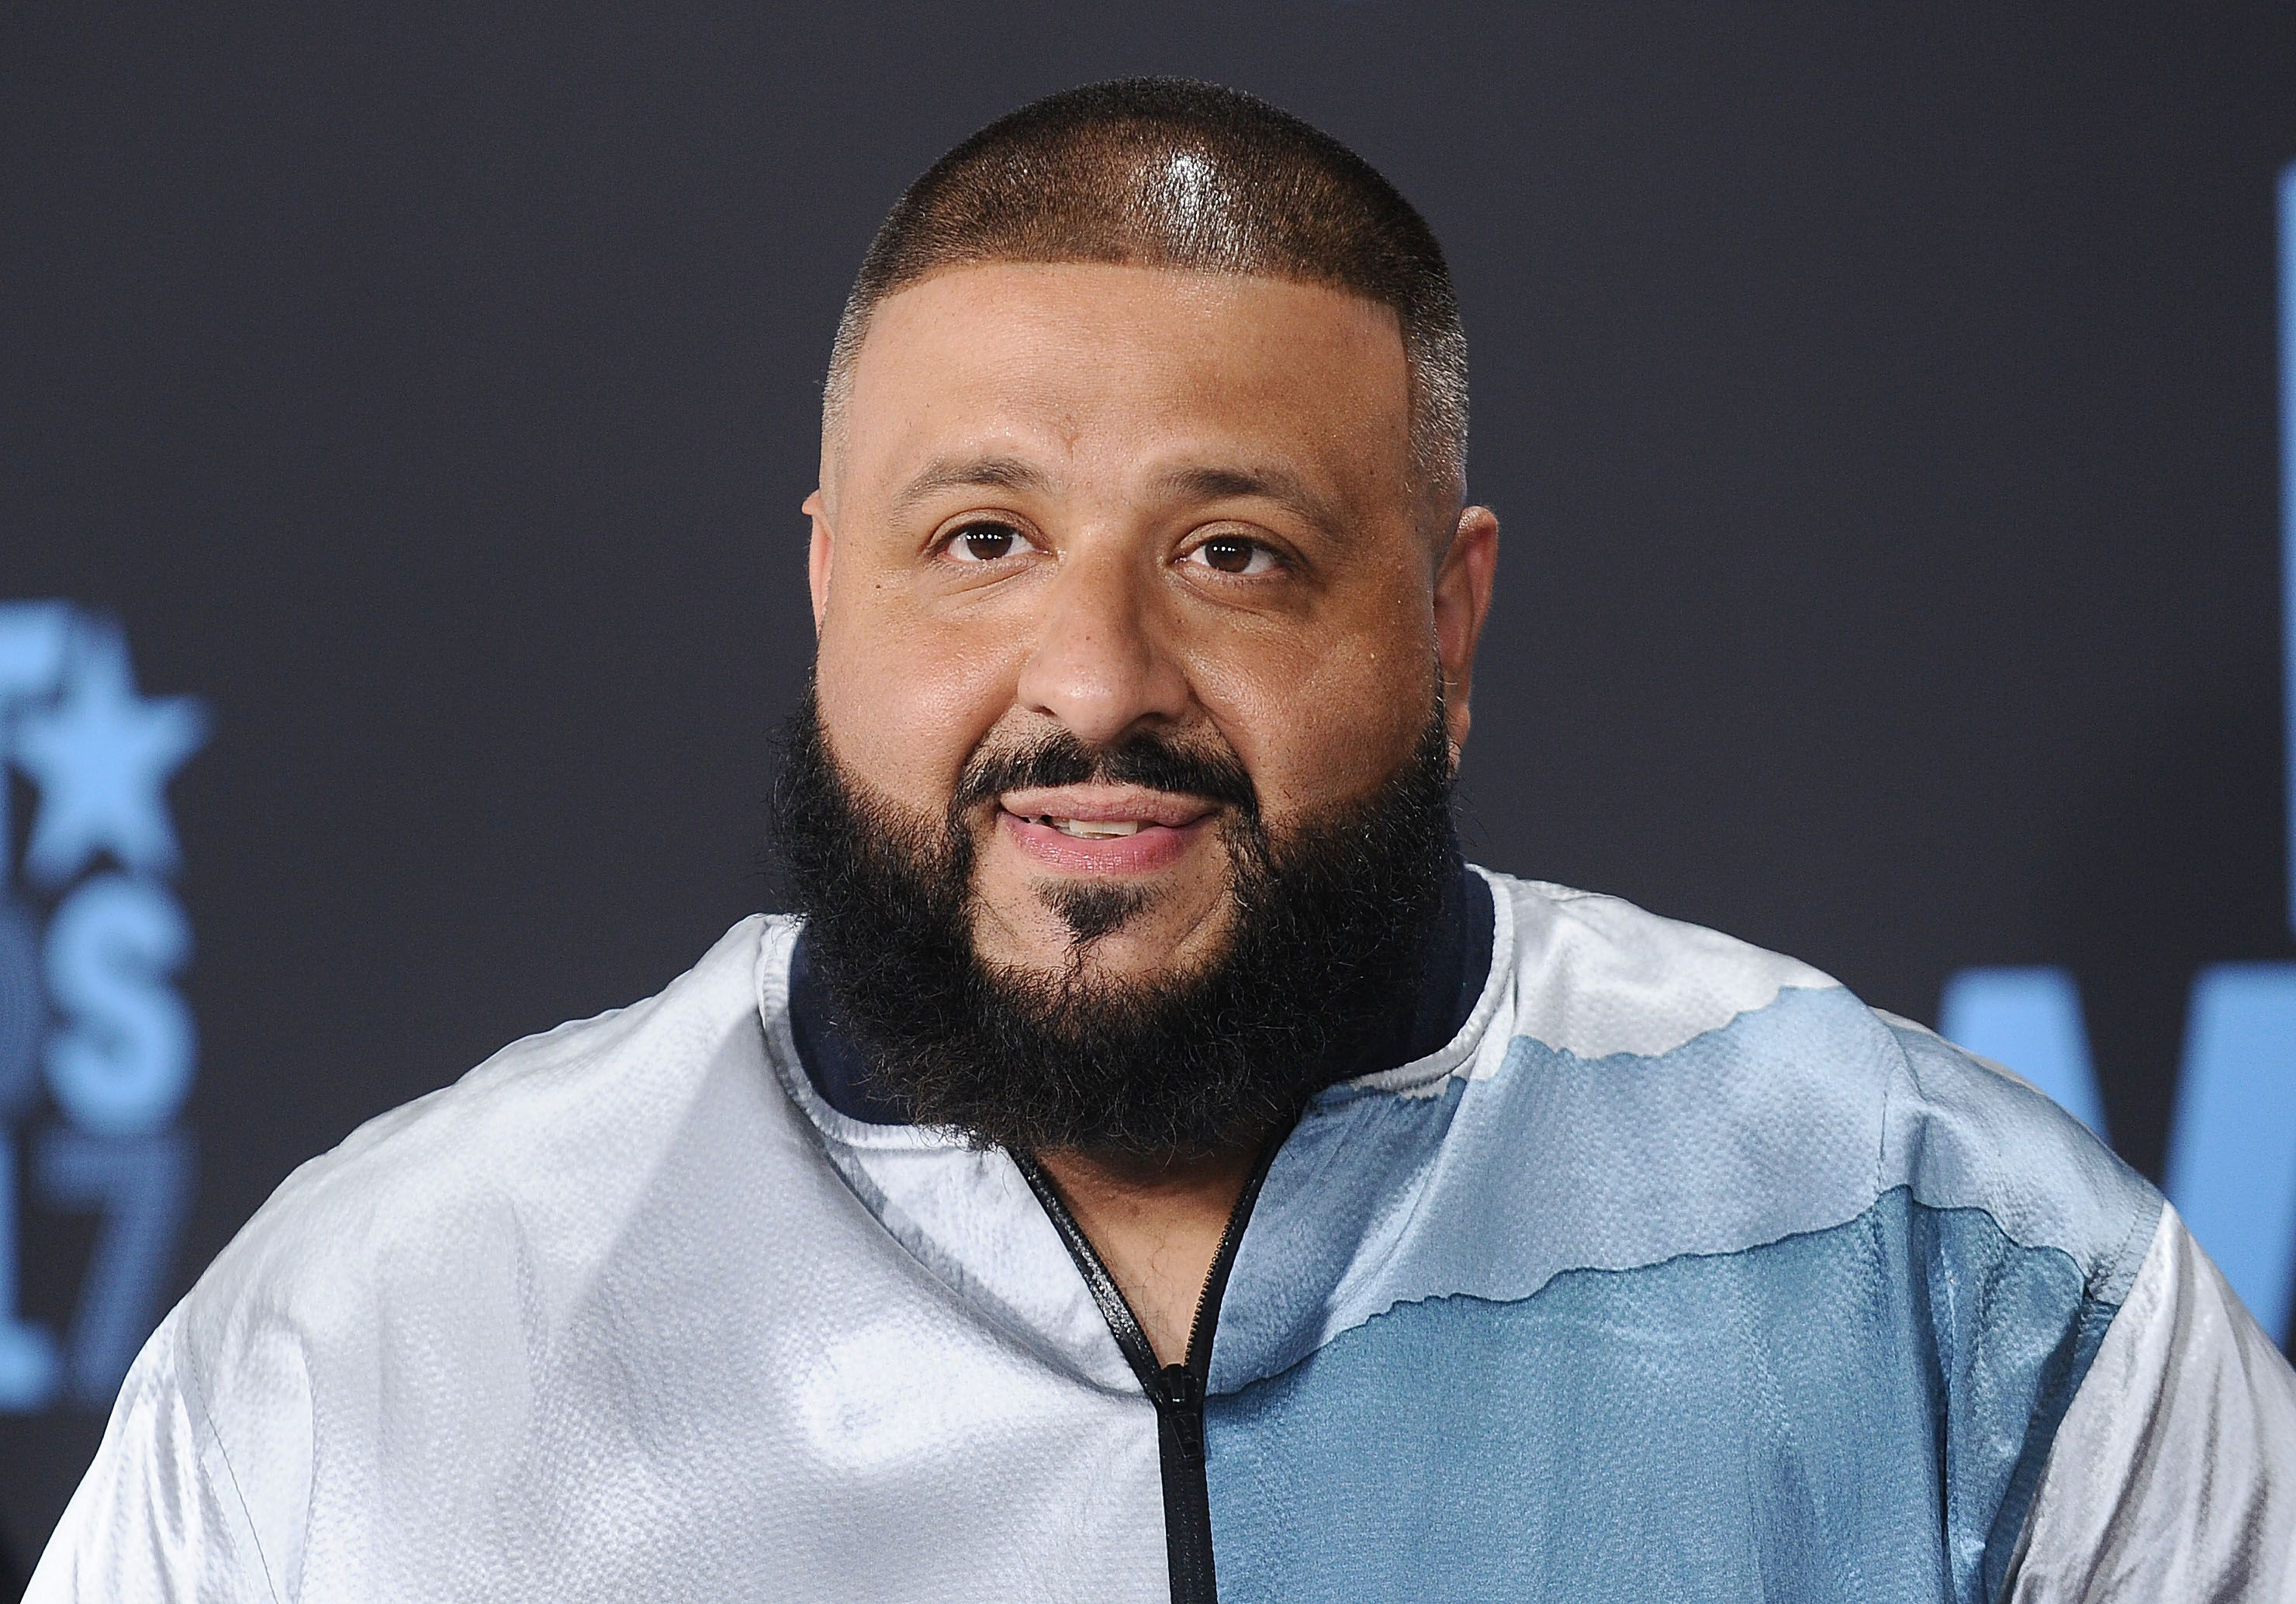 DJ Khaled attends the 2017 BET Awards at Microsoft Theater on June 25, 2017 | Photo: Getty Images.